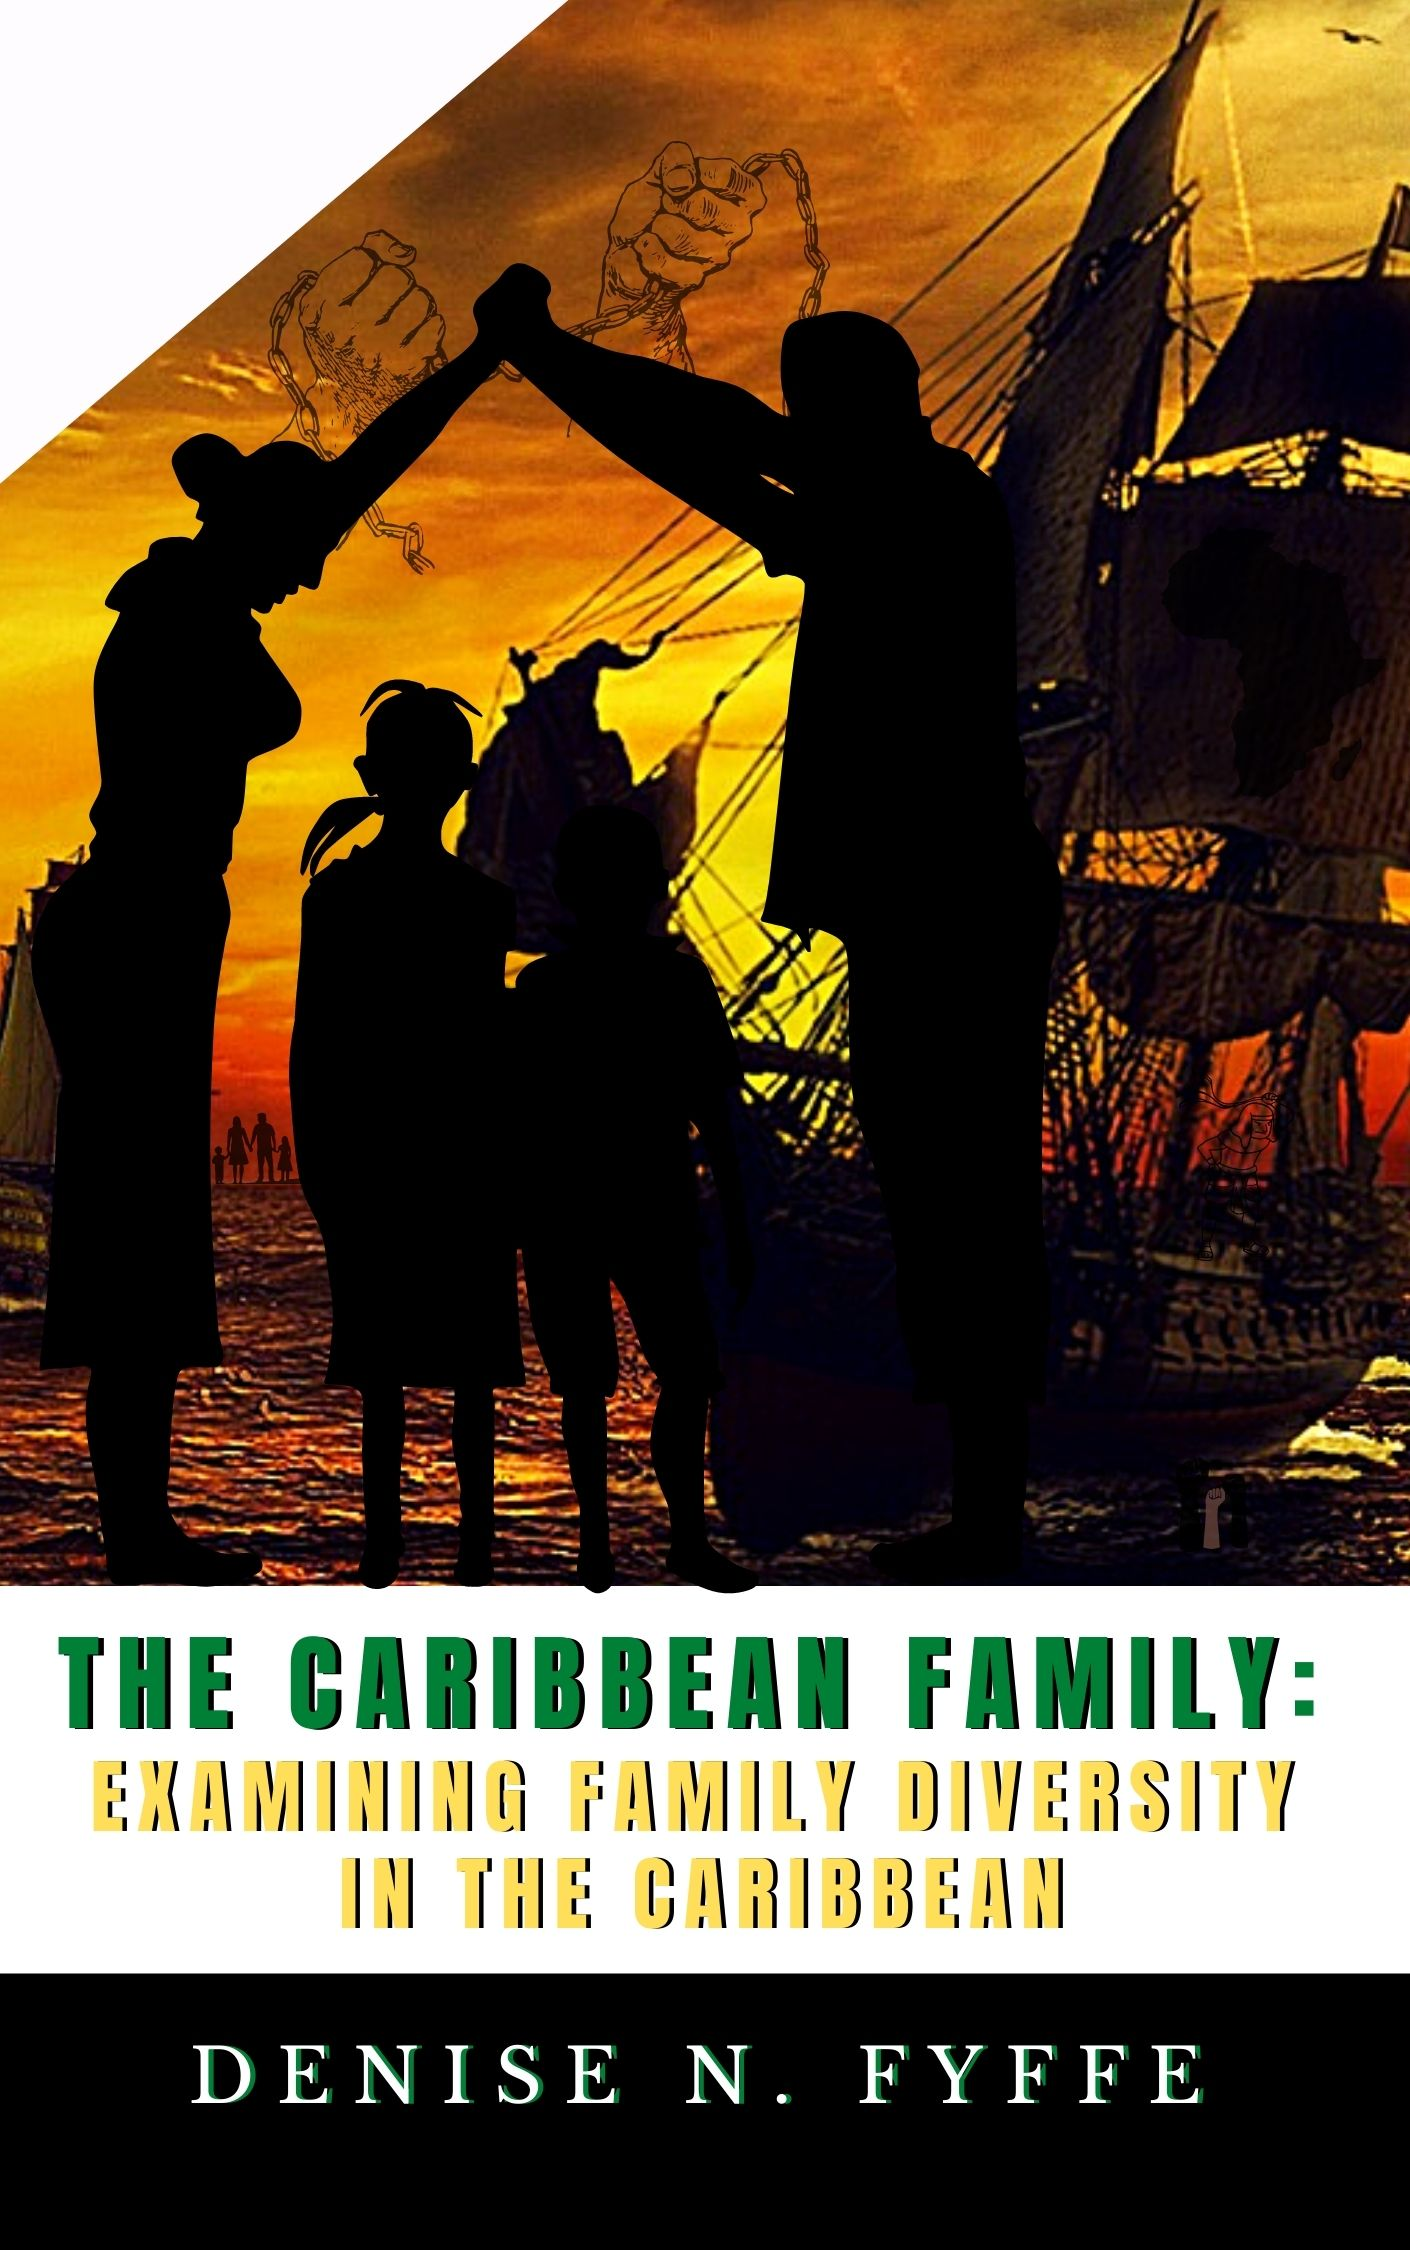 2021 Academic Book Covers - The Caribbean Family by Denise Fyffe